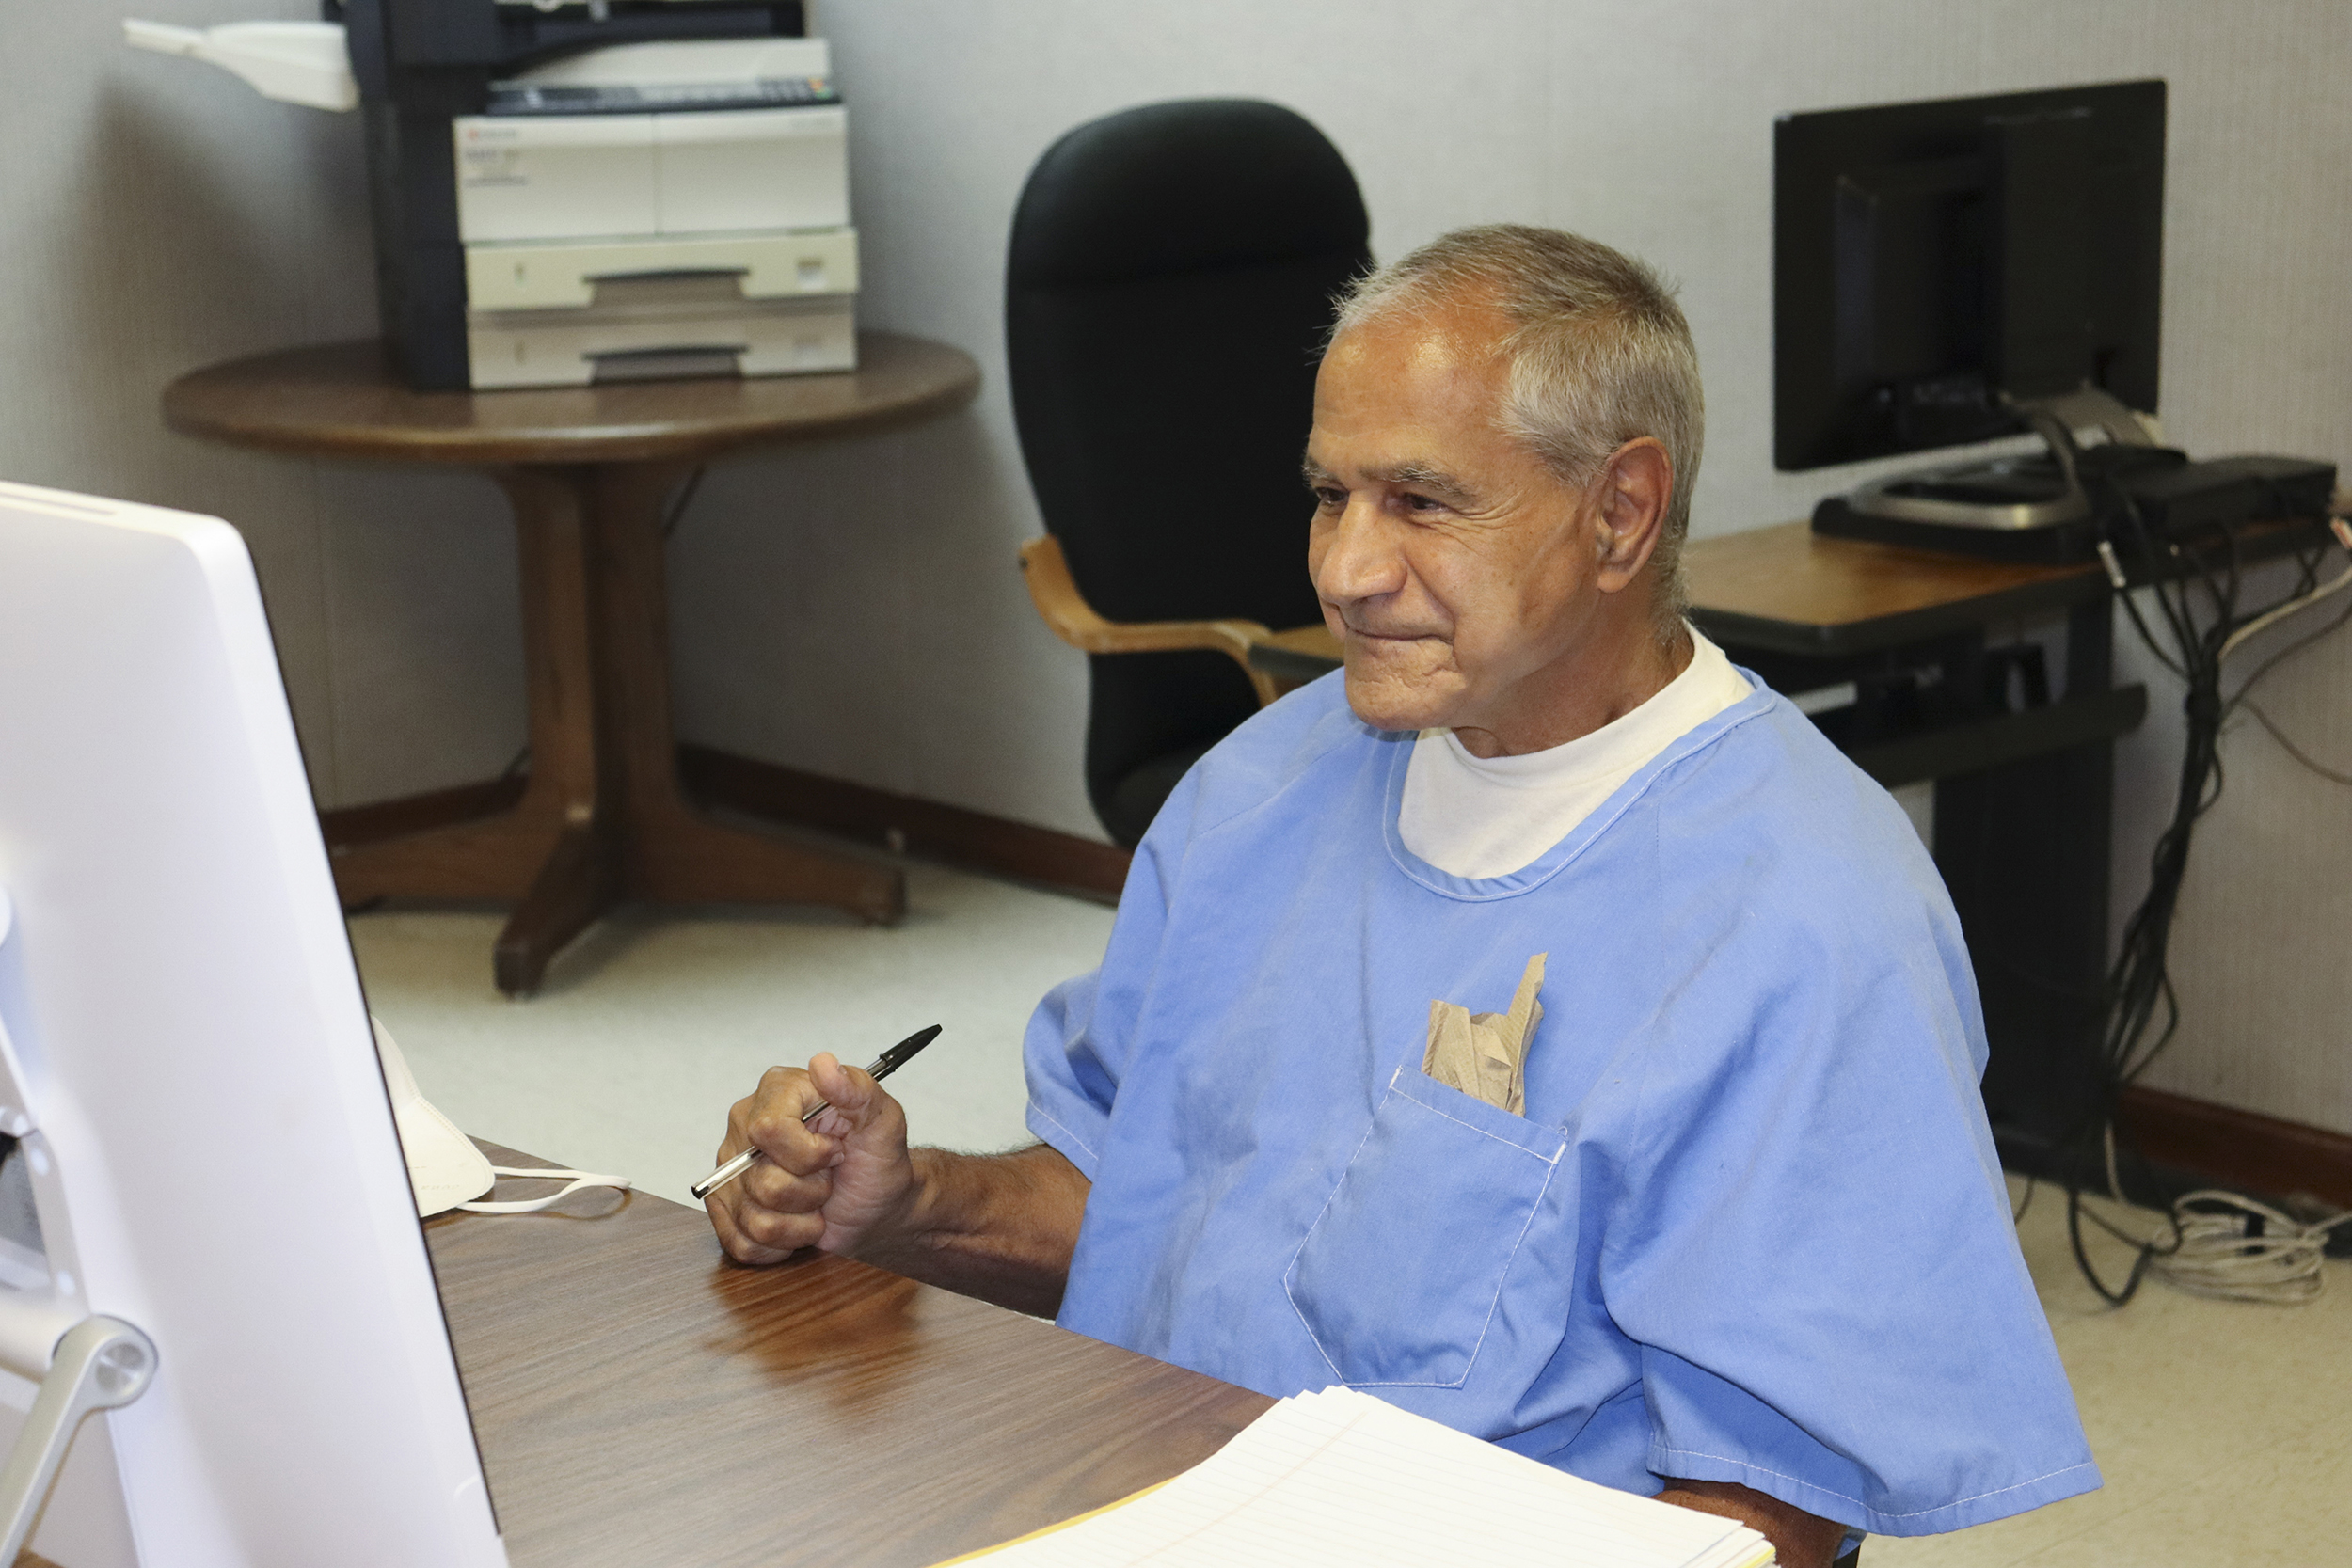 RFK assassin Sirhan B. Sirhan recommended for parole, but decision not final